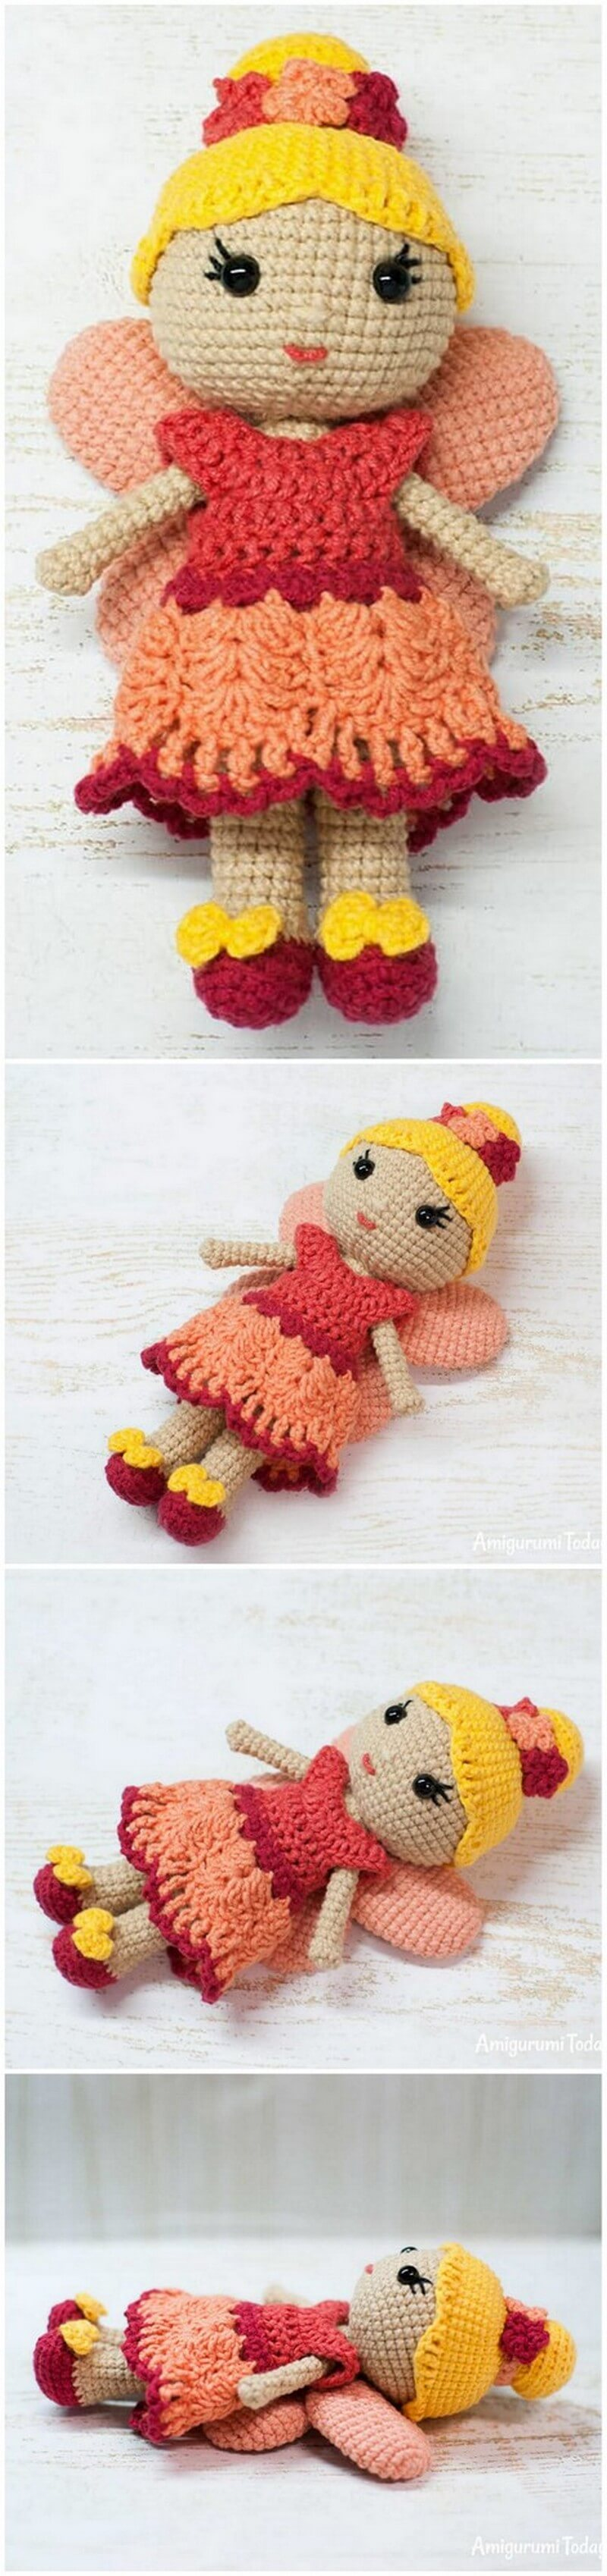 Crochet Amigurumi Doll Pattern (44)